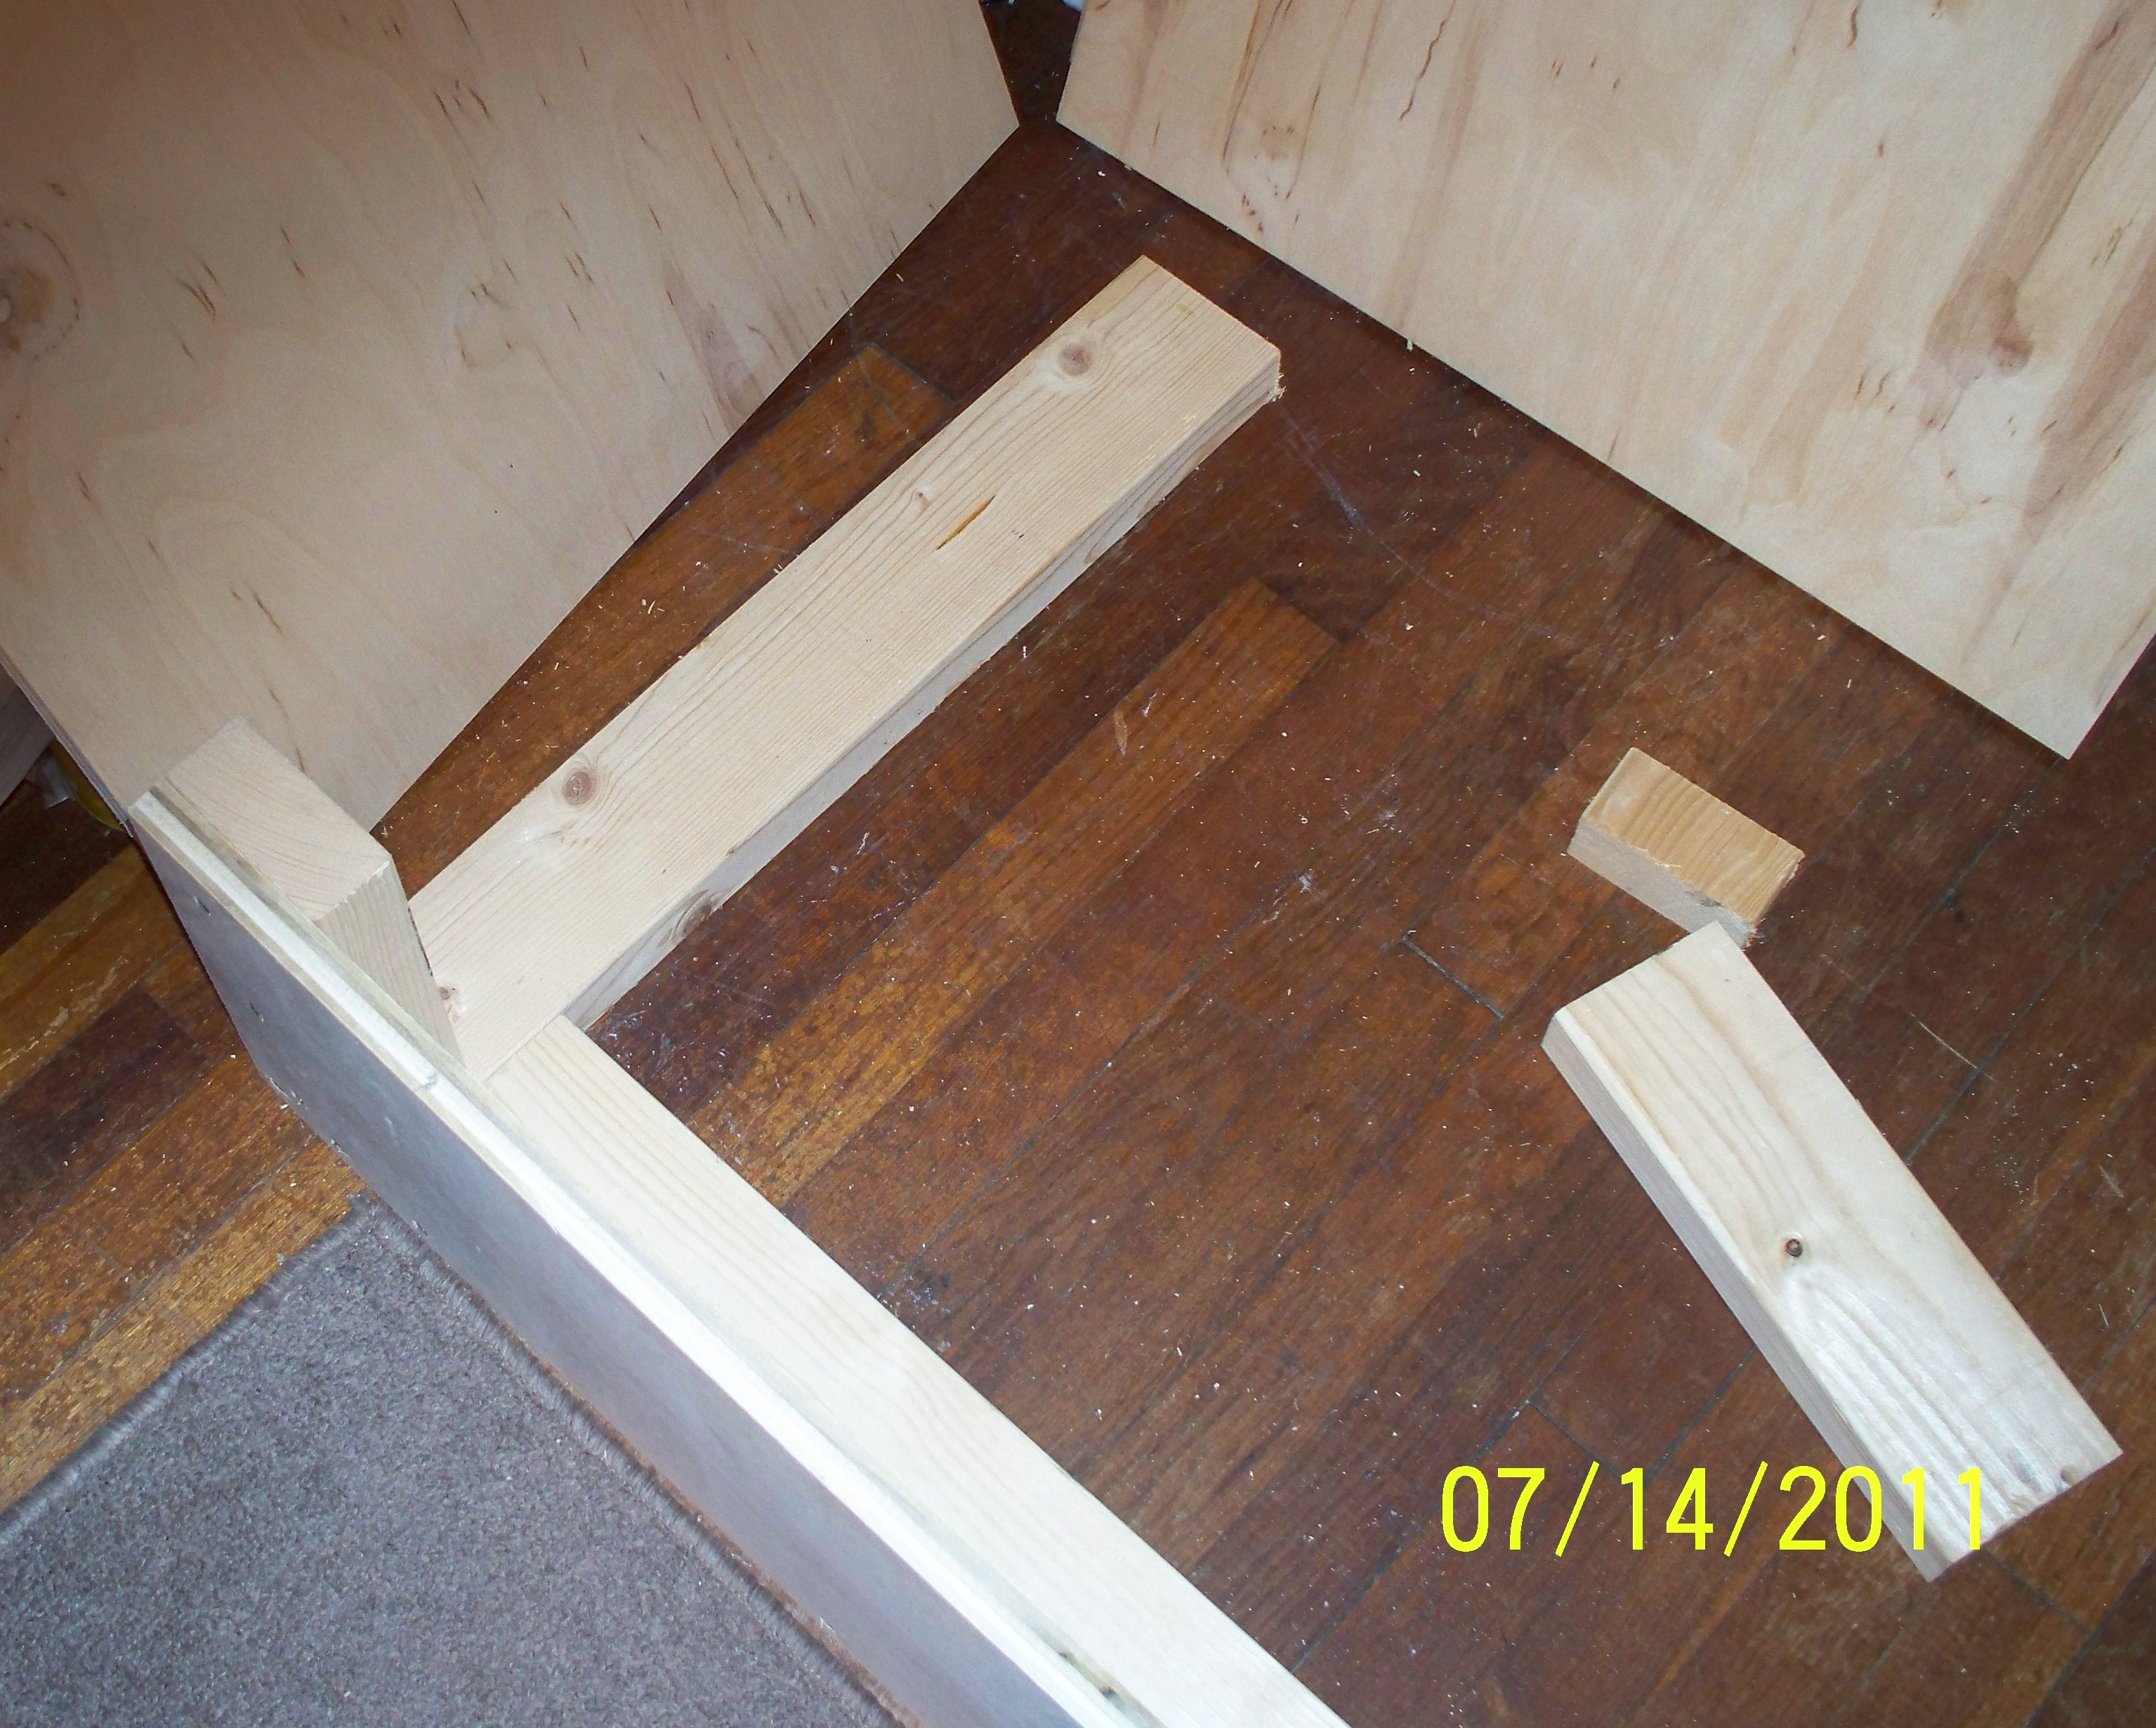 Picture of Assembly: Legs